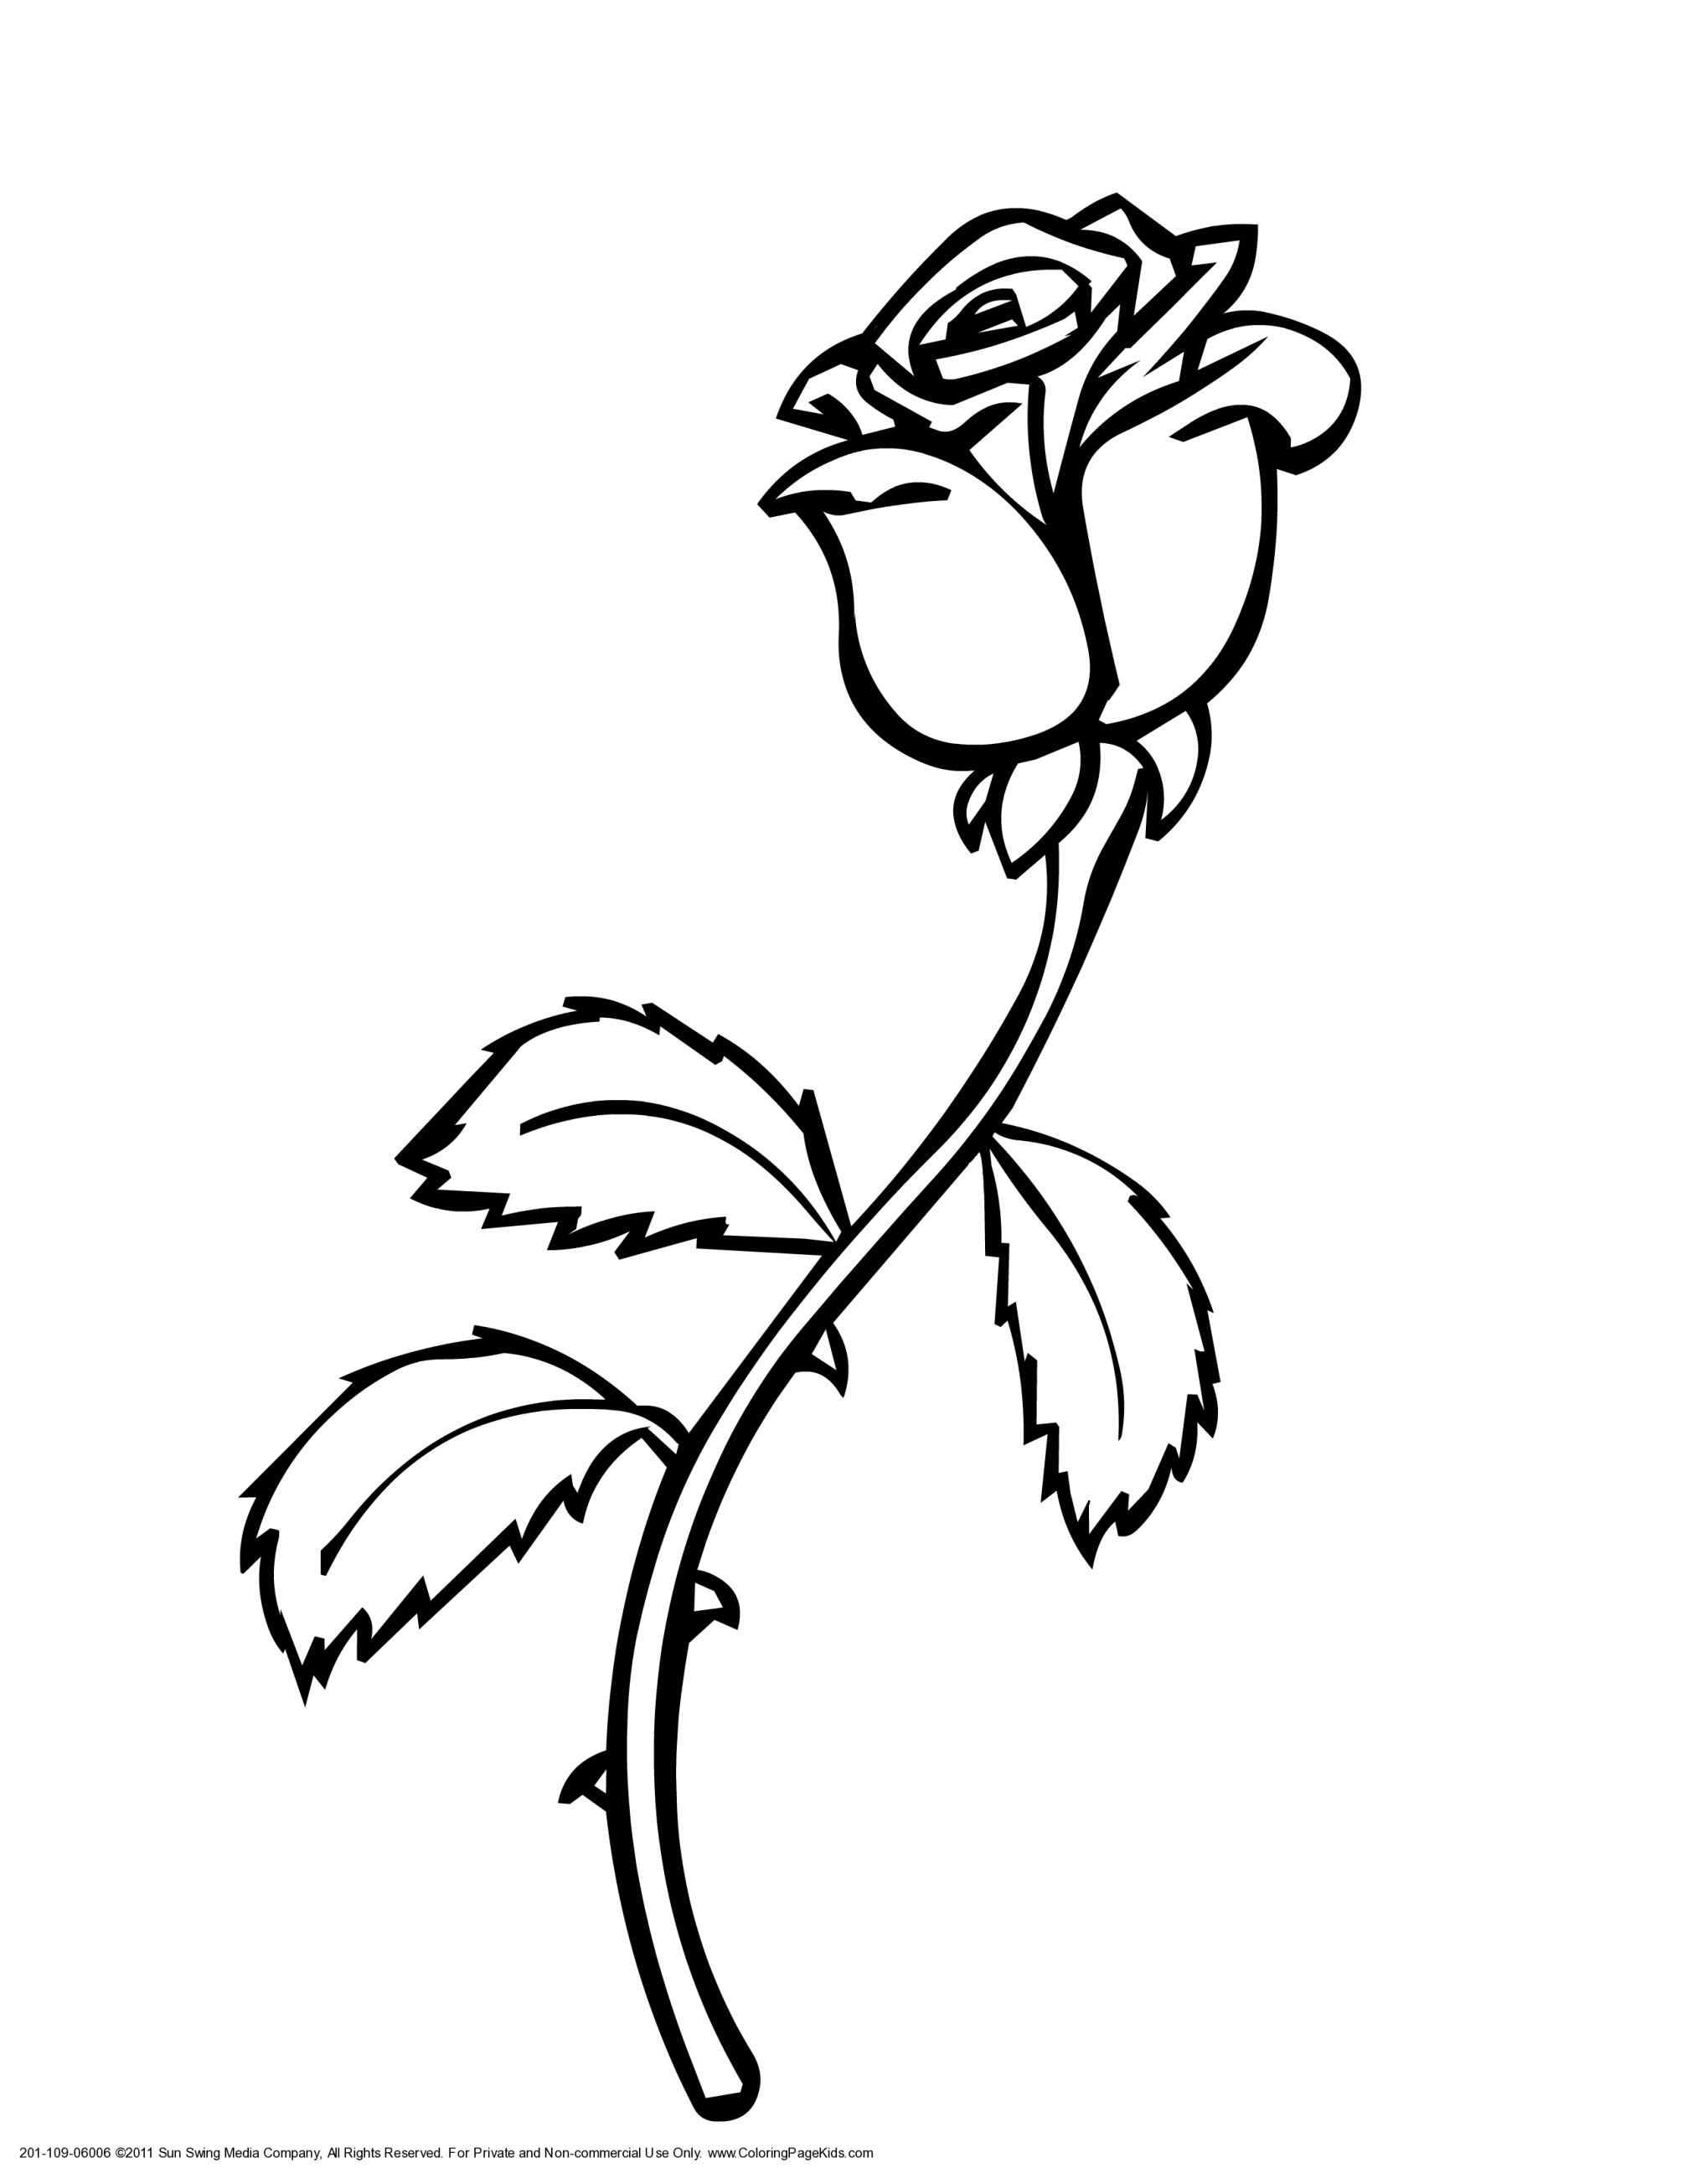 982a69bd2 2014x2607 Designs By Me Rose Custom Traditional Rose Line Drawing